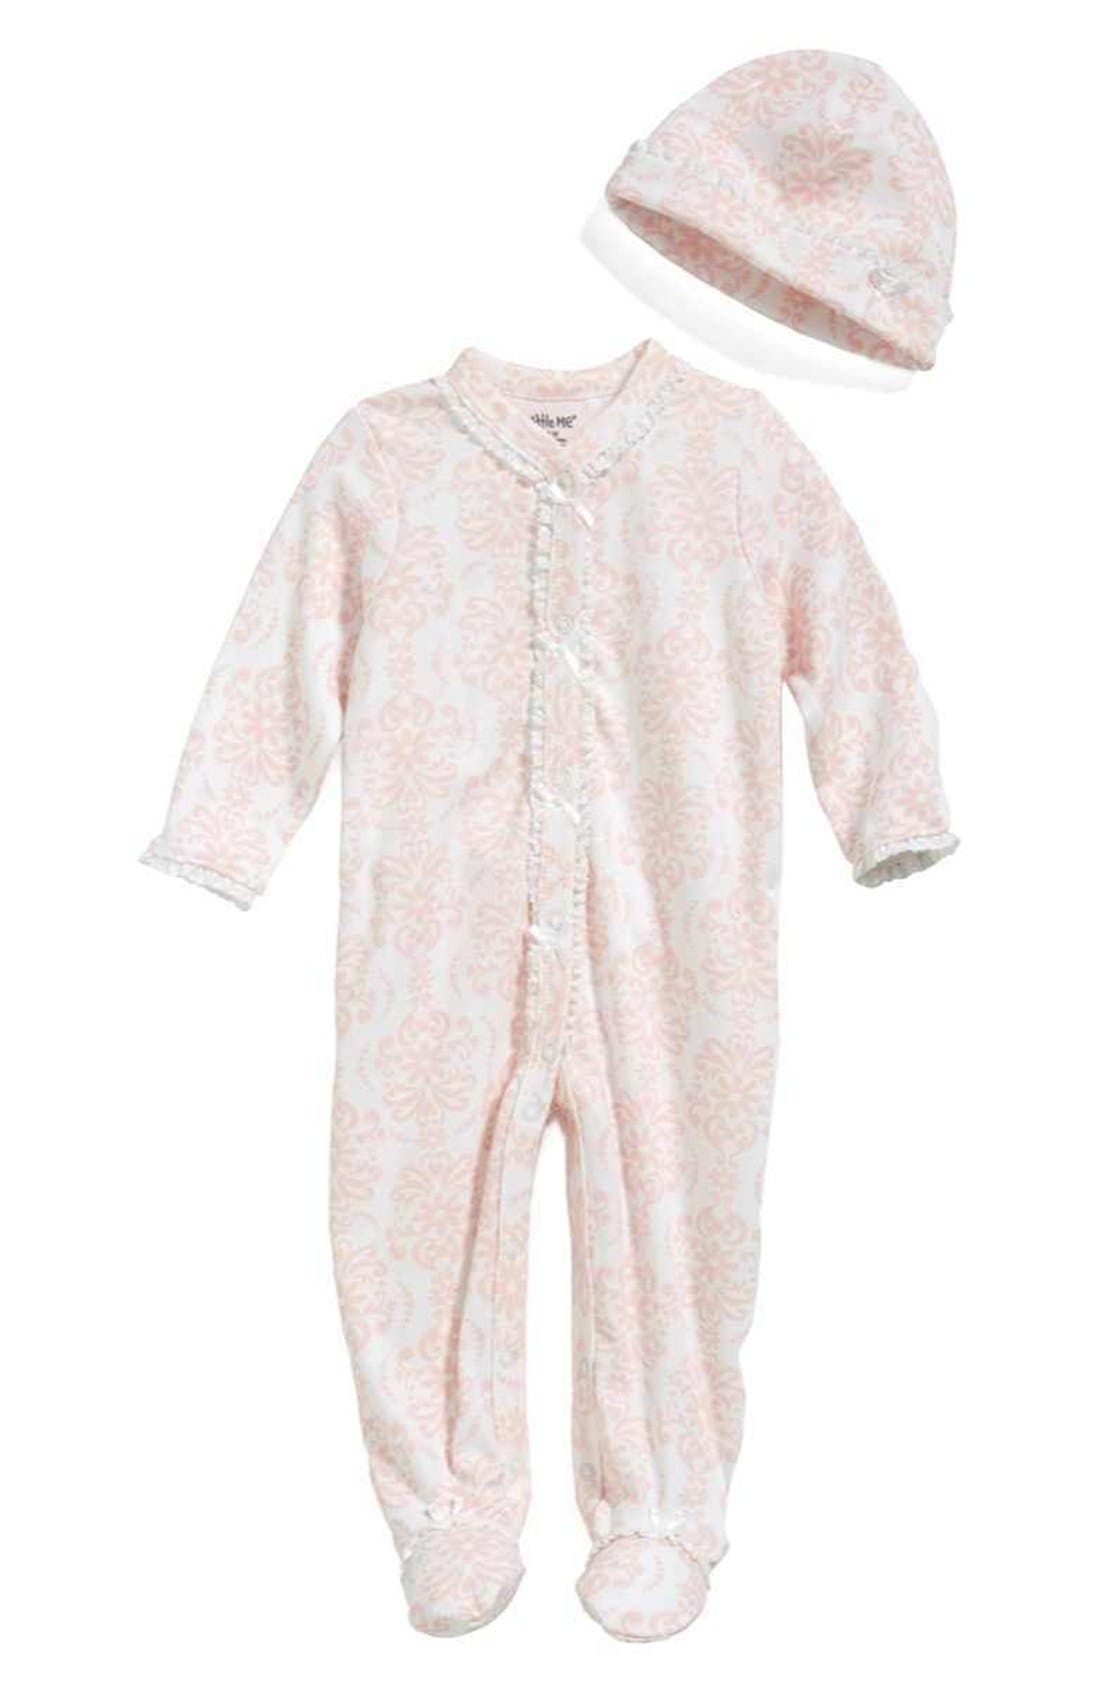 Main Image - Little Me 'Damask' One-Piece & Hat (Baby Girls)